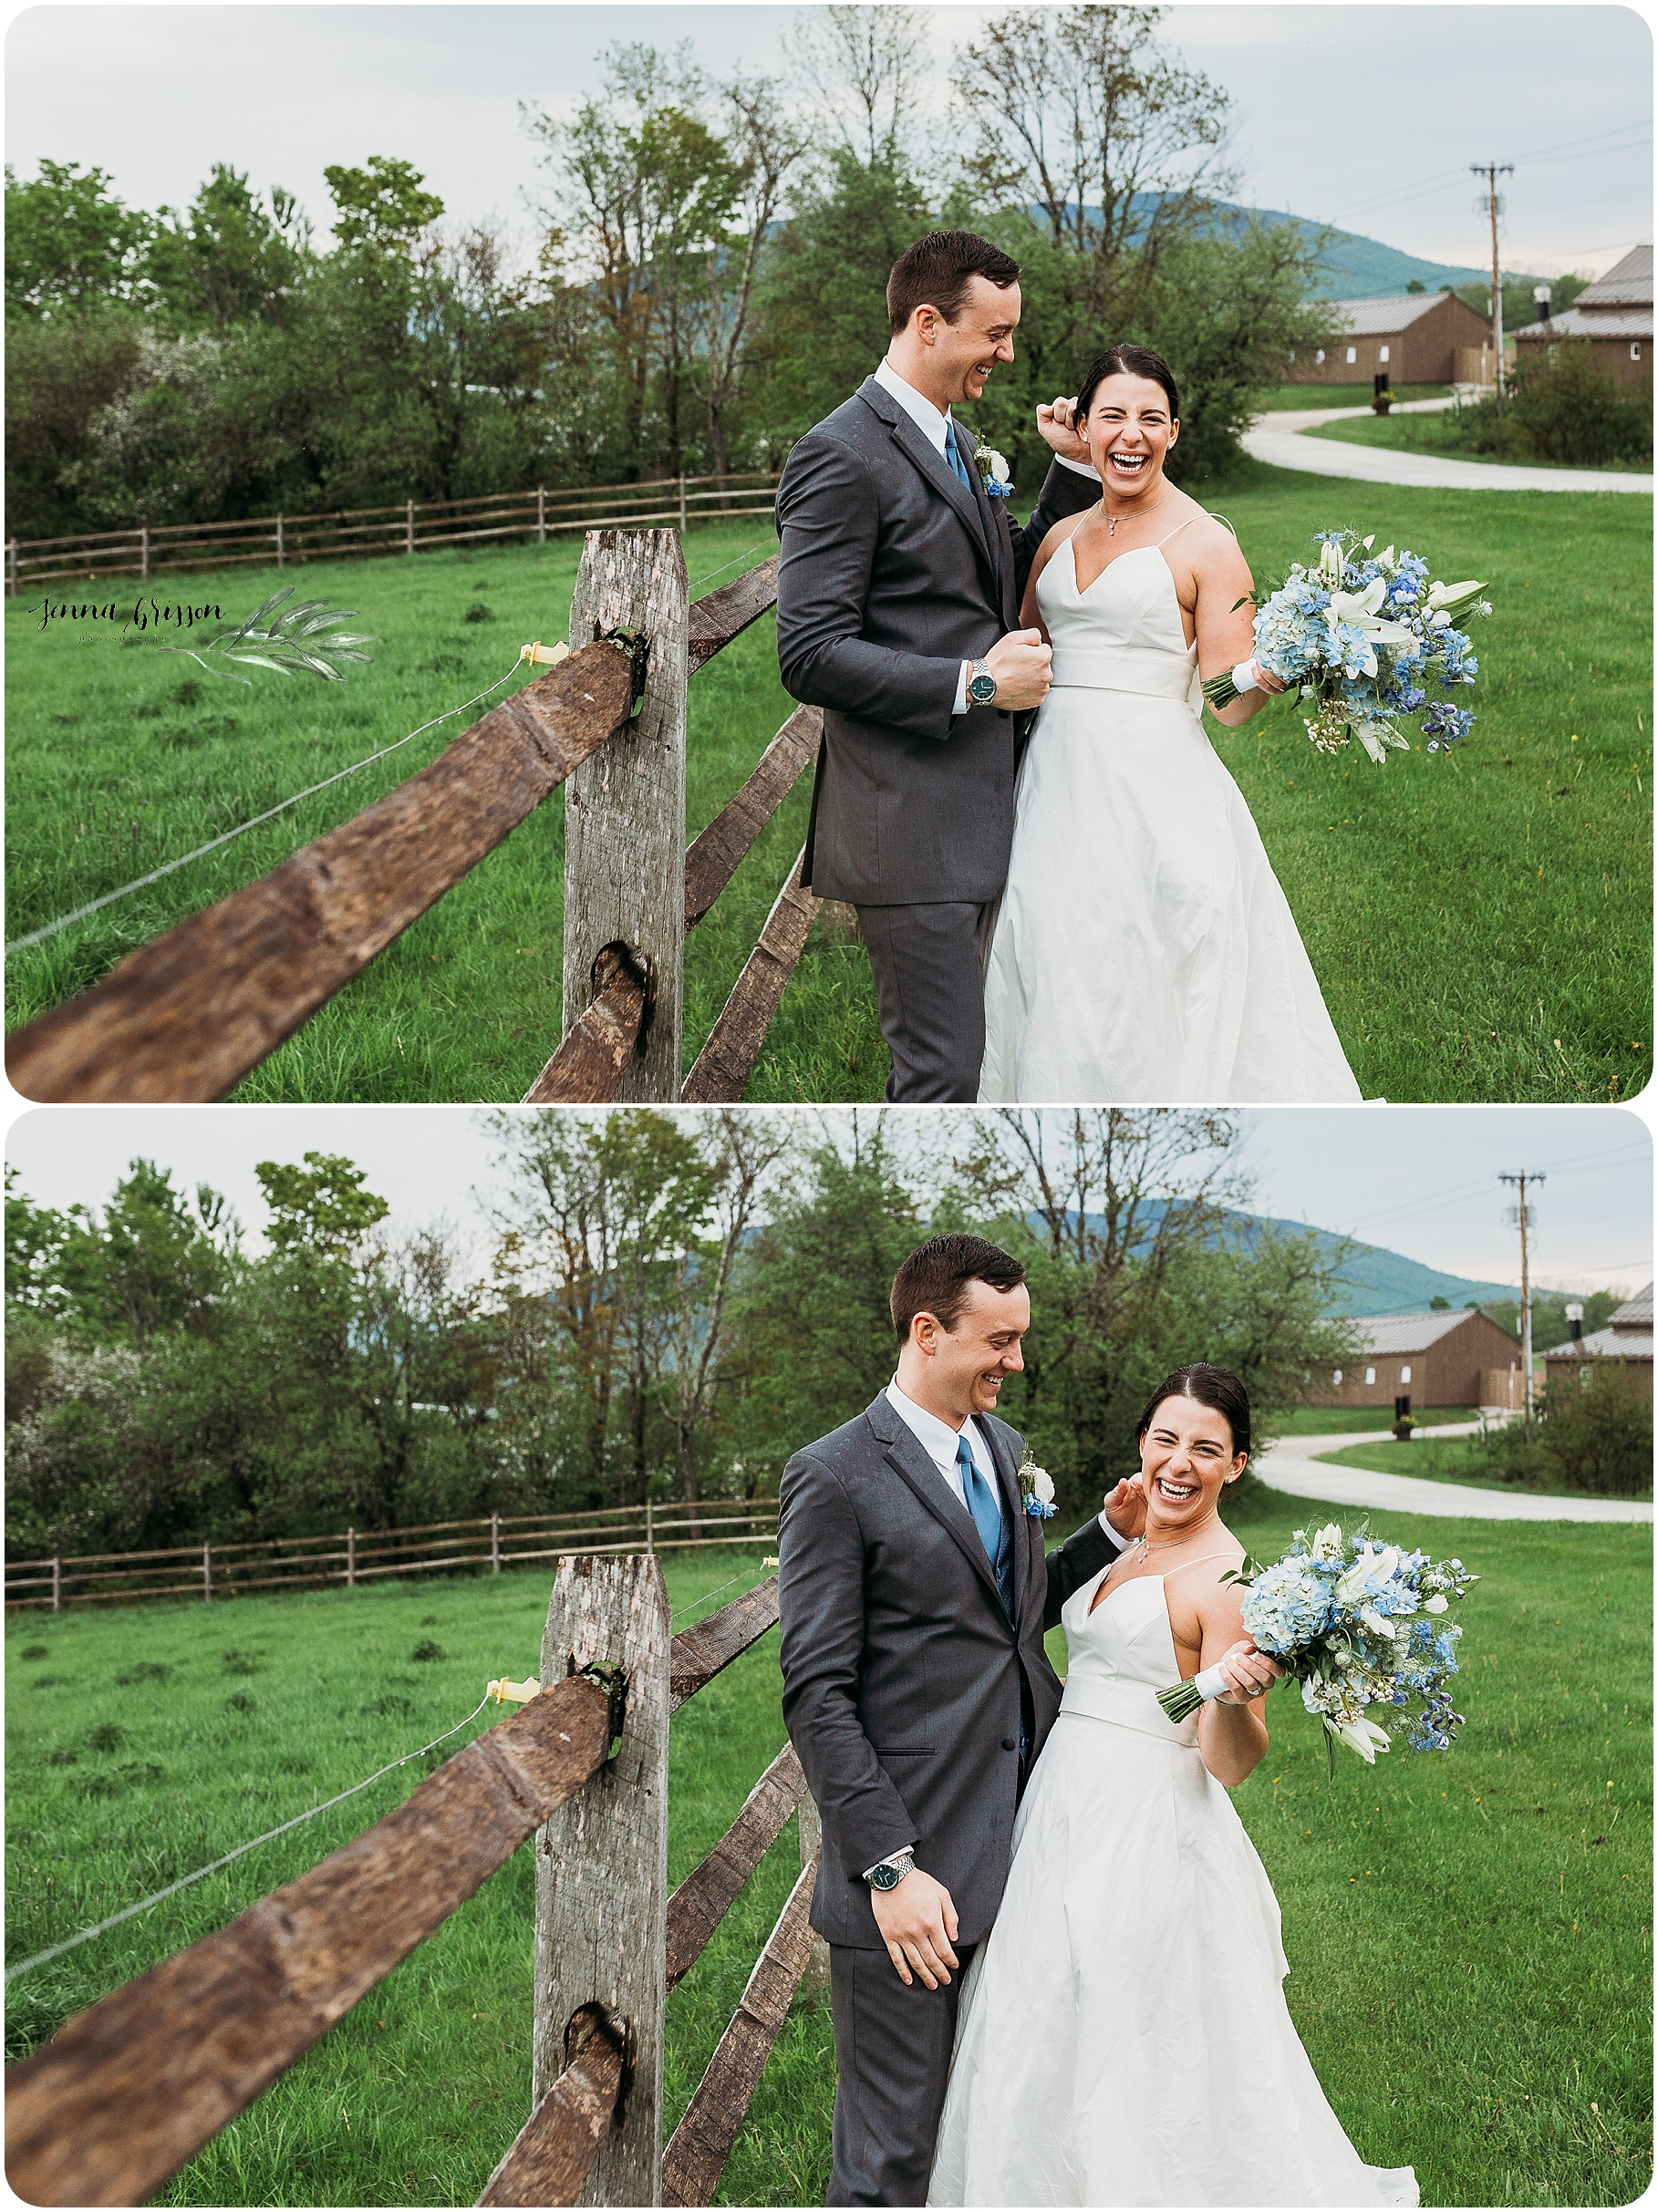 Mountain Top Inn Wedding Vermont 2 - Jenna Brisson